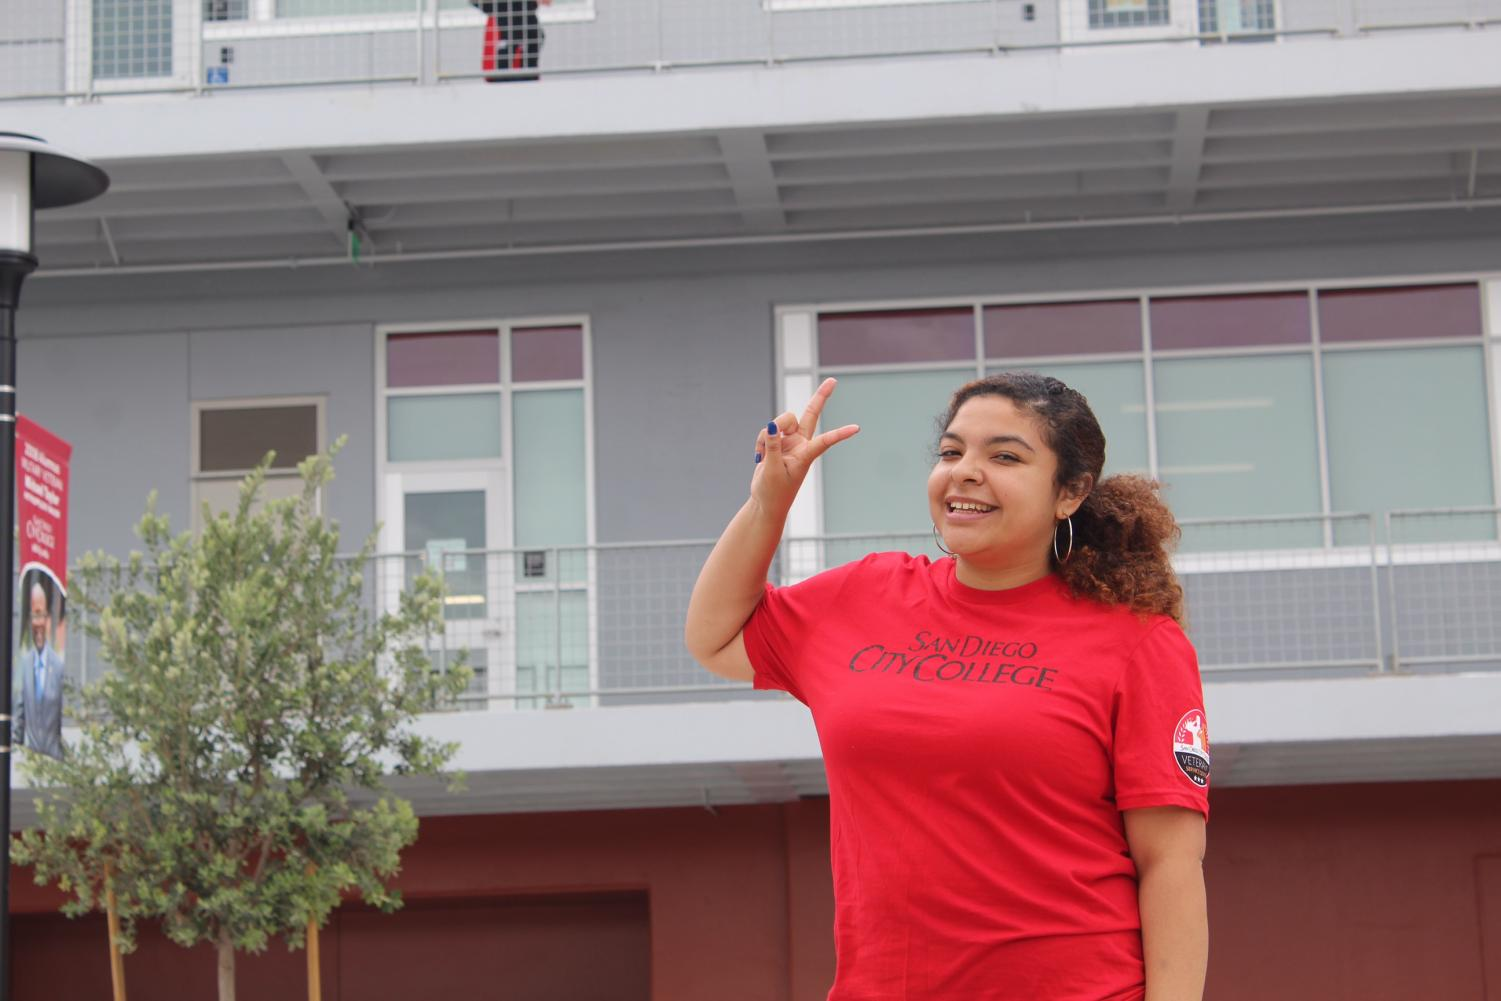 Mia Zedukes will graduate from City College having been part of the SDCCD Honor's Program. By Jonny Rico/City Times